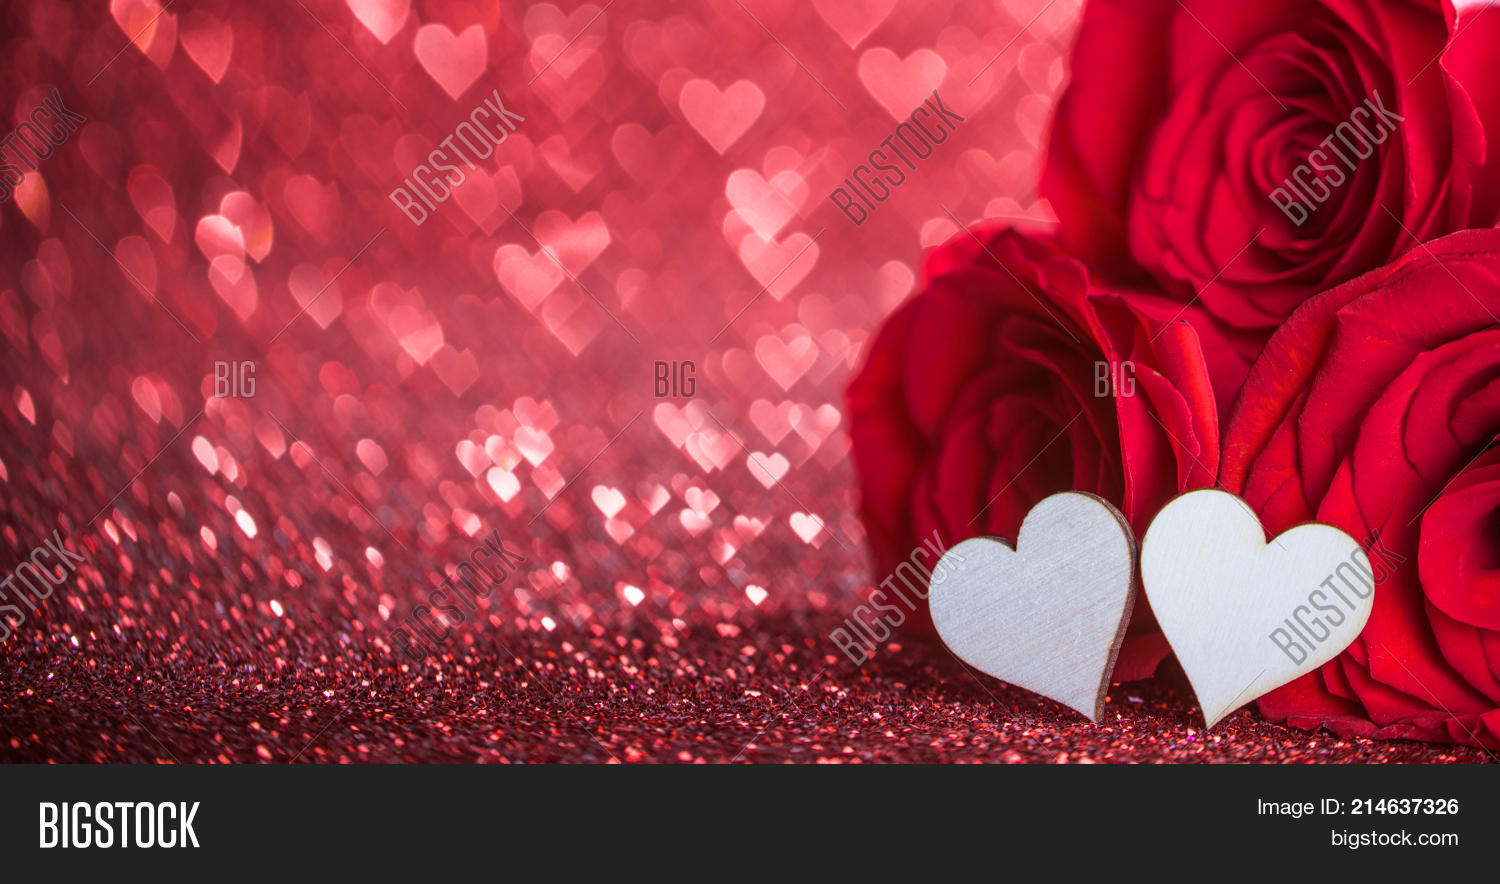 Roses Hearts On Red Image Photo Free Trial Bigstock